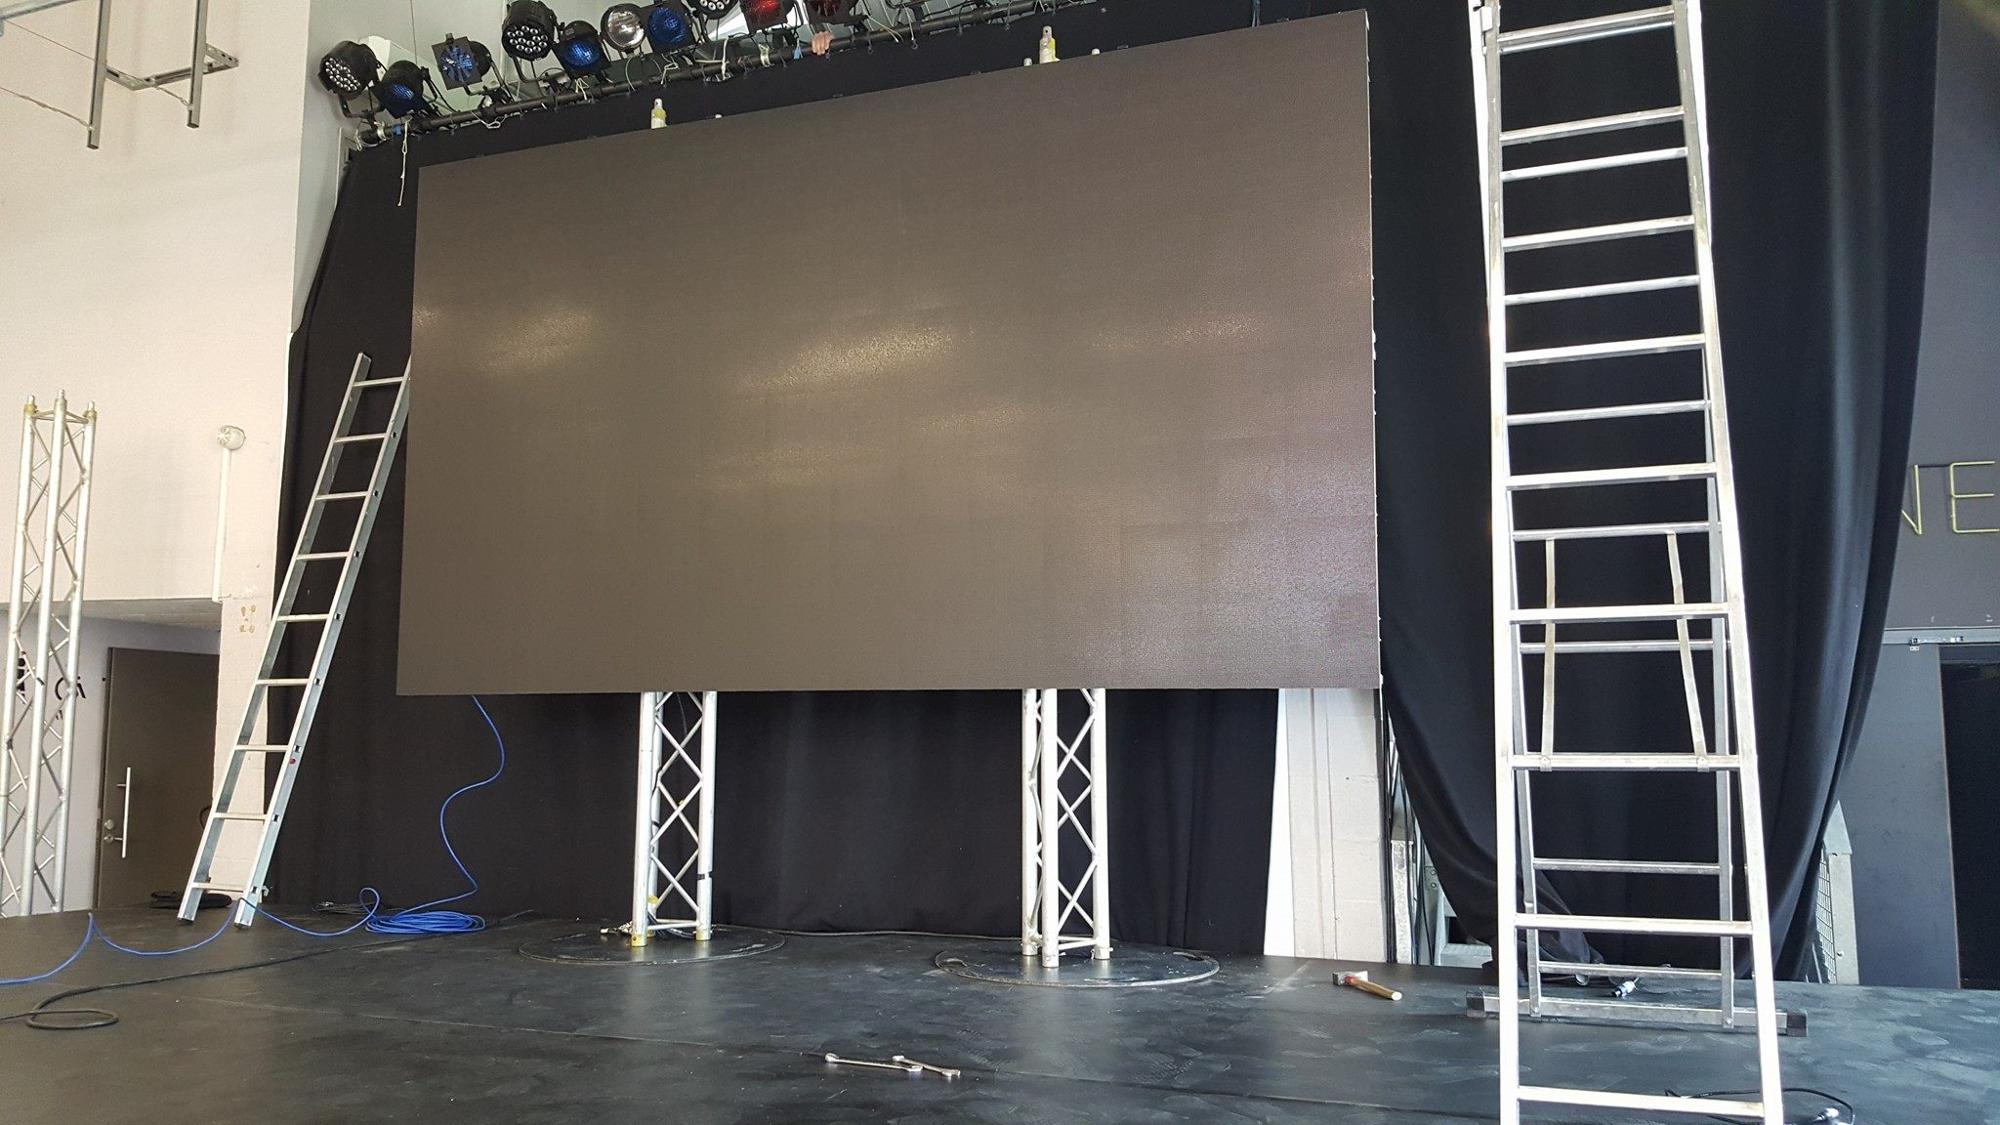 Shenzhen Cheap Auditorium Modular P4 Indoor Led Display Screen With Hdmi